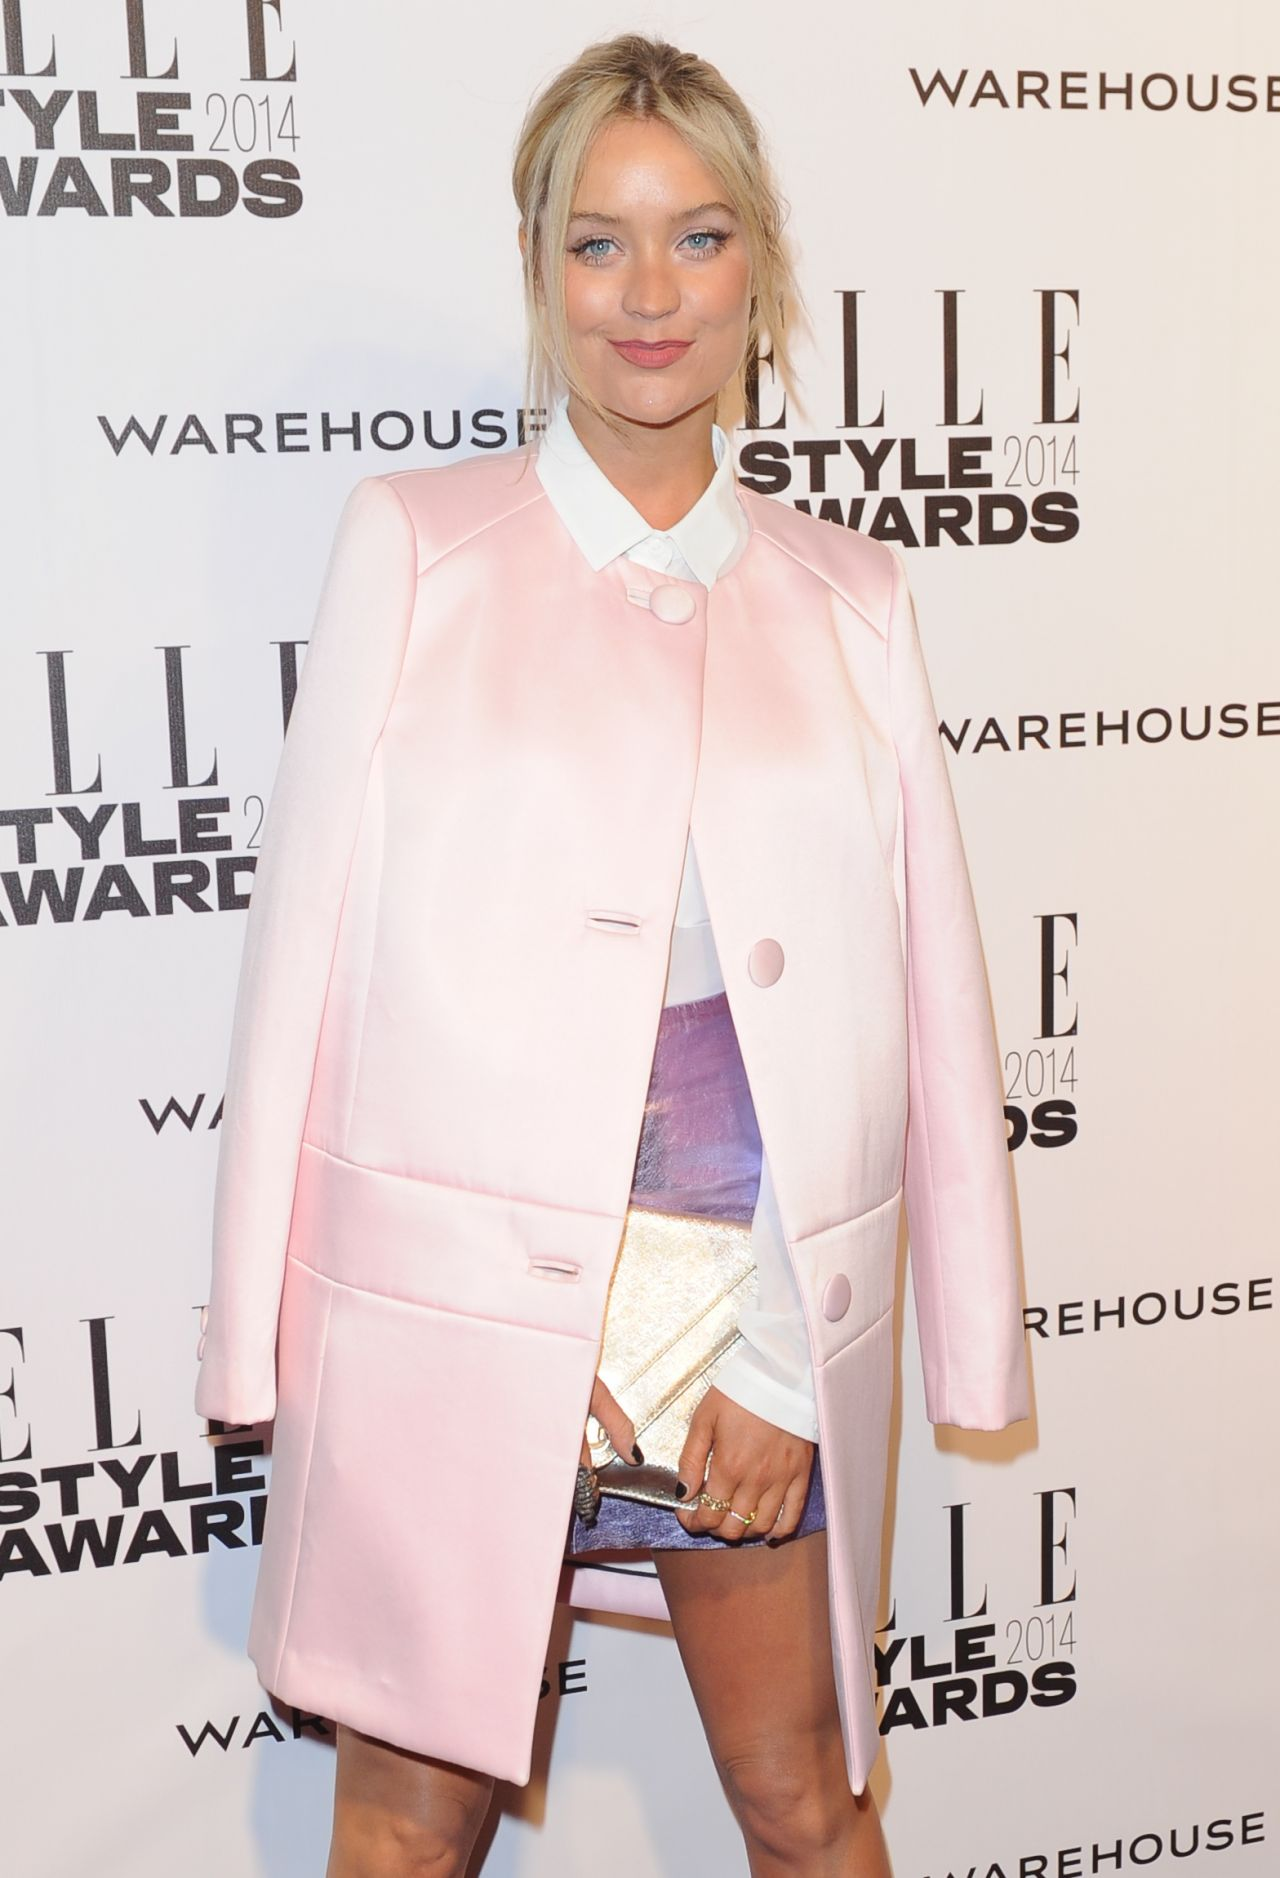 Laura Whitmore Wearing Warehouse – Elle Style Awards 2014